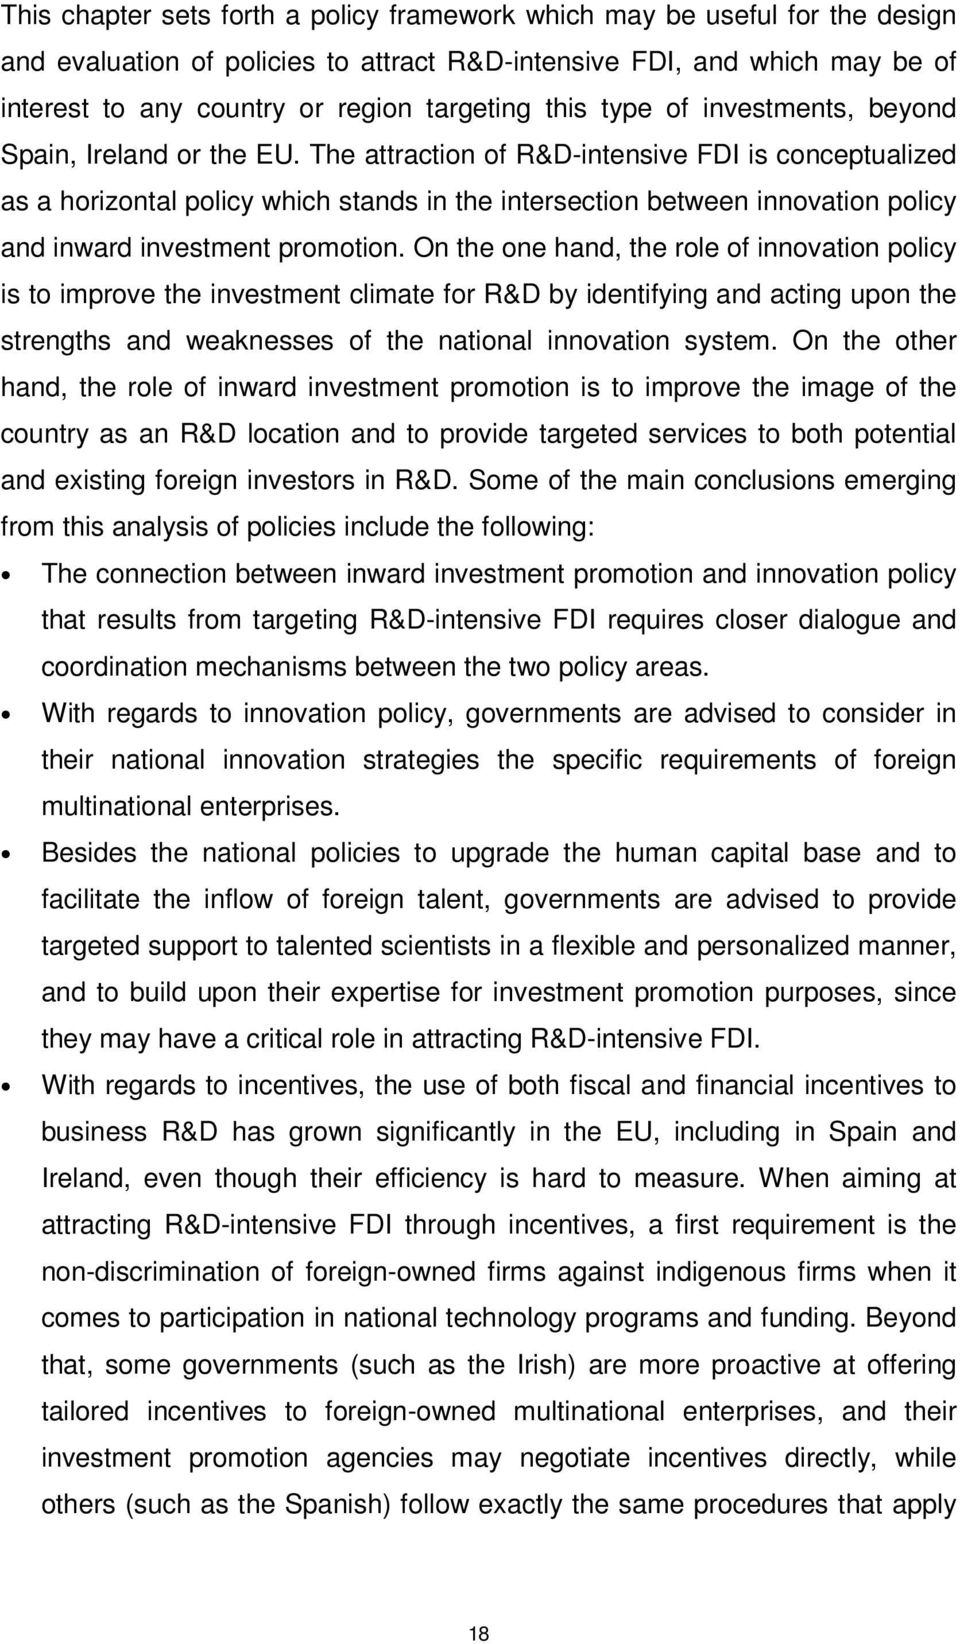 The attraction of R&D-intensive FDI is conceptualized as a horizontal policy which stands in the intersection between innovation policy and inward investment promotion.